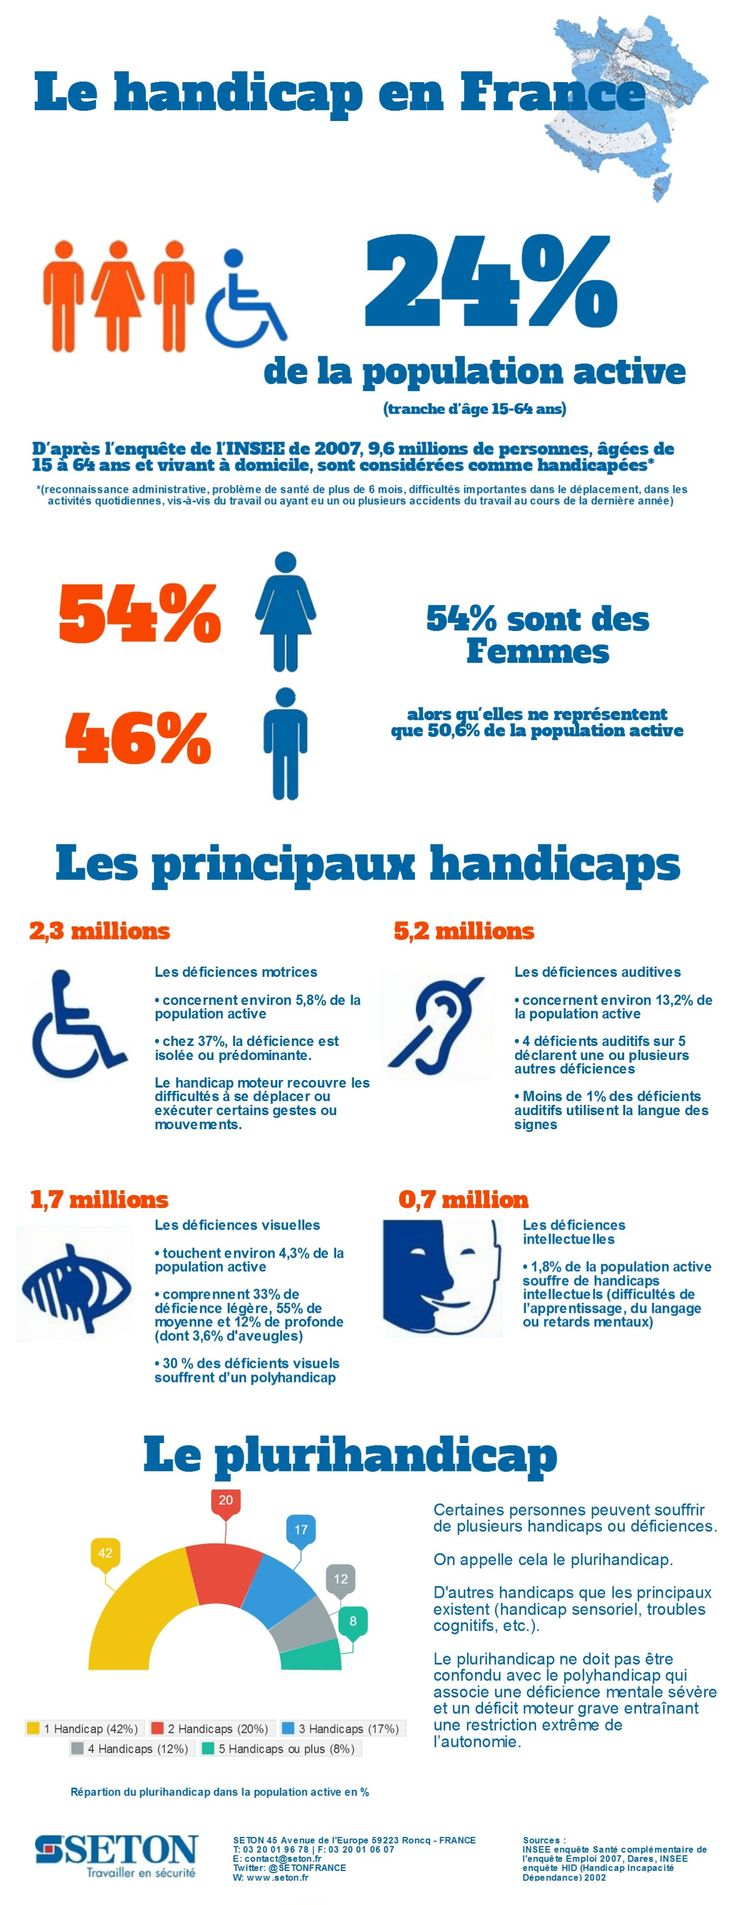 infographie - le handicap en france | la science et la technologie